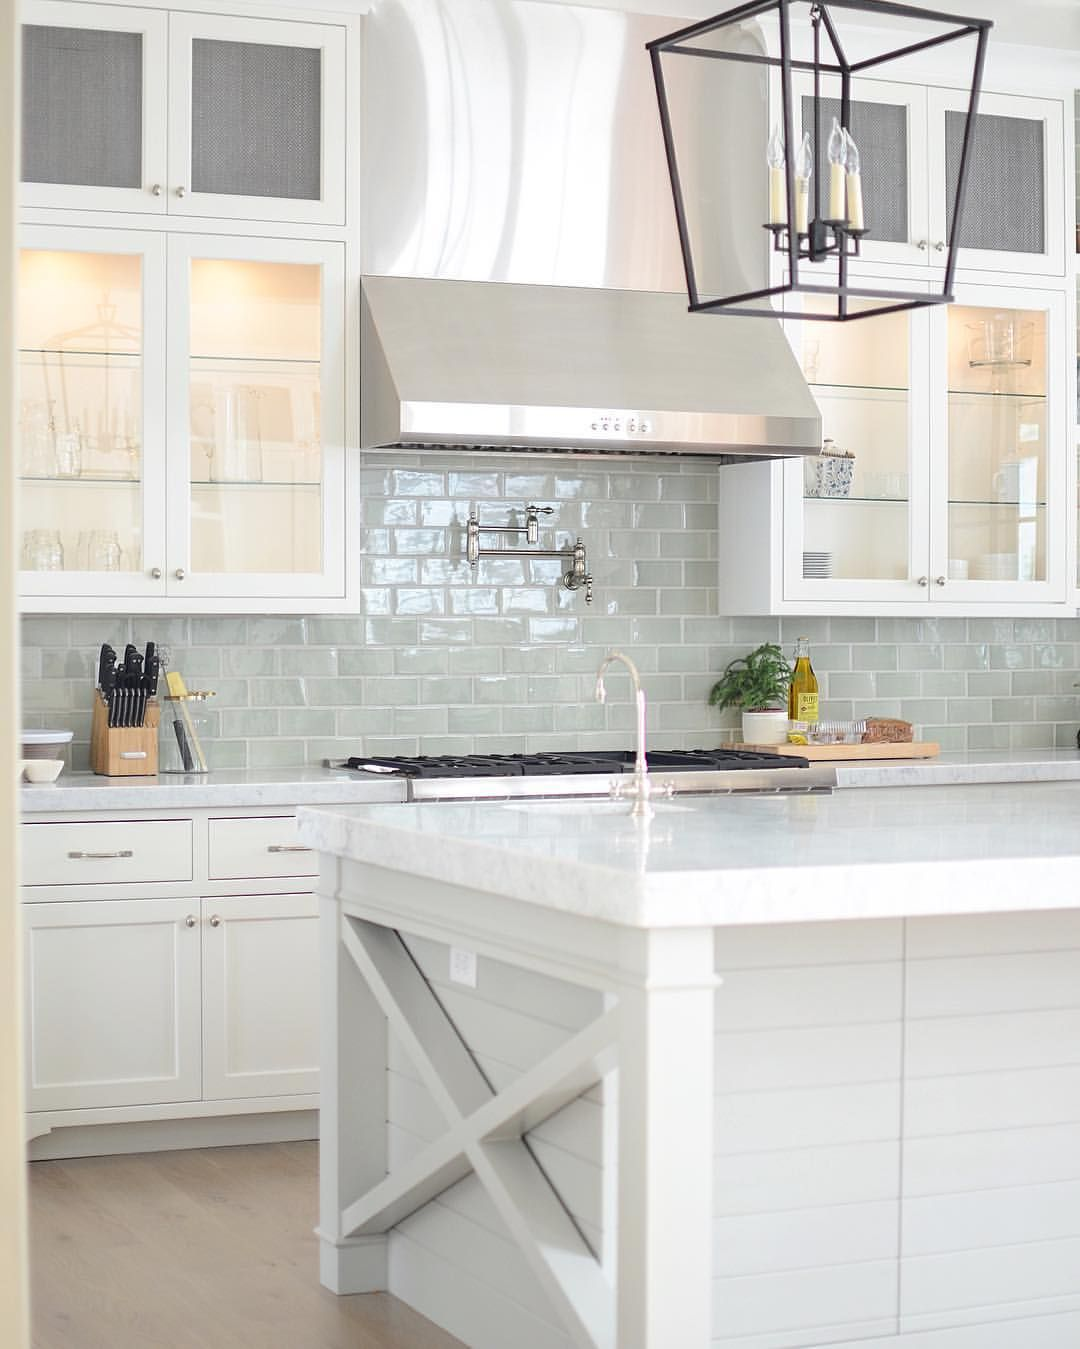 Blue Tile Backsplash Kitchen Knobs And Pulls For Cabinets Bright White With Pale Subway